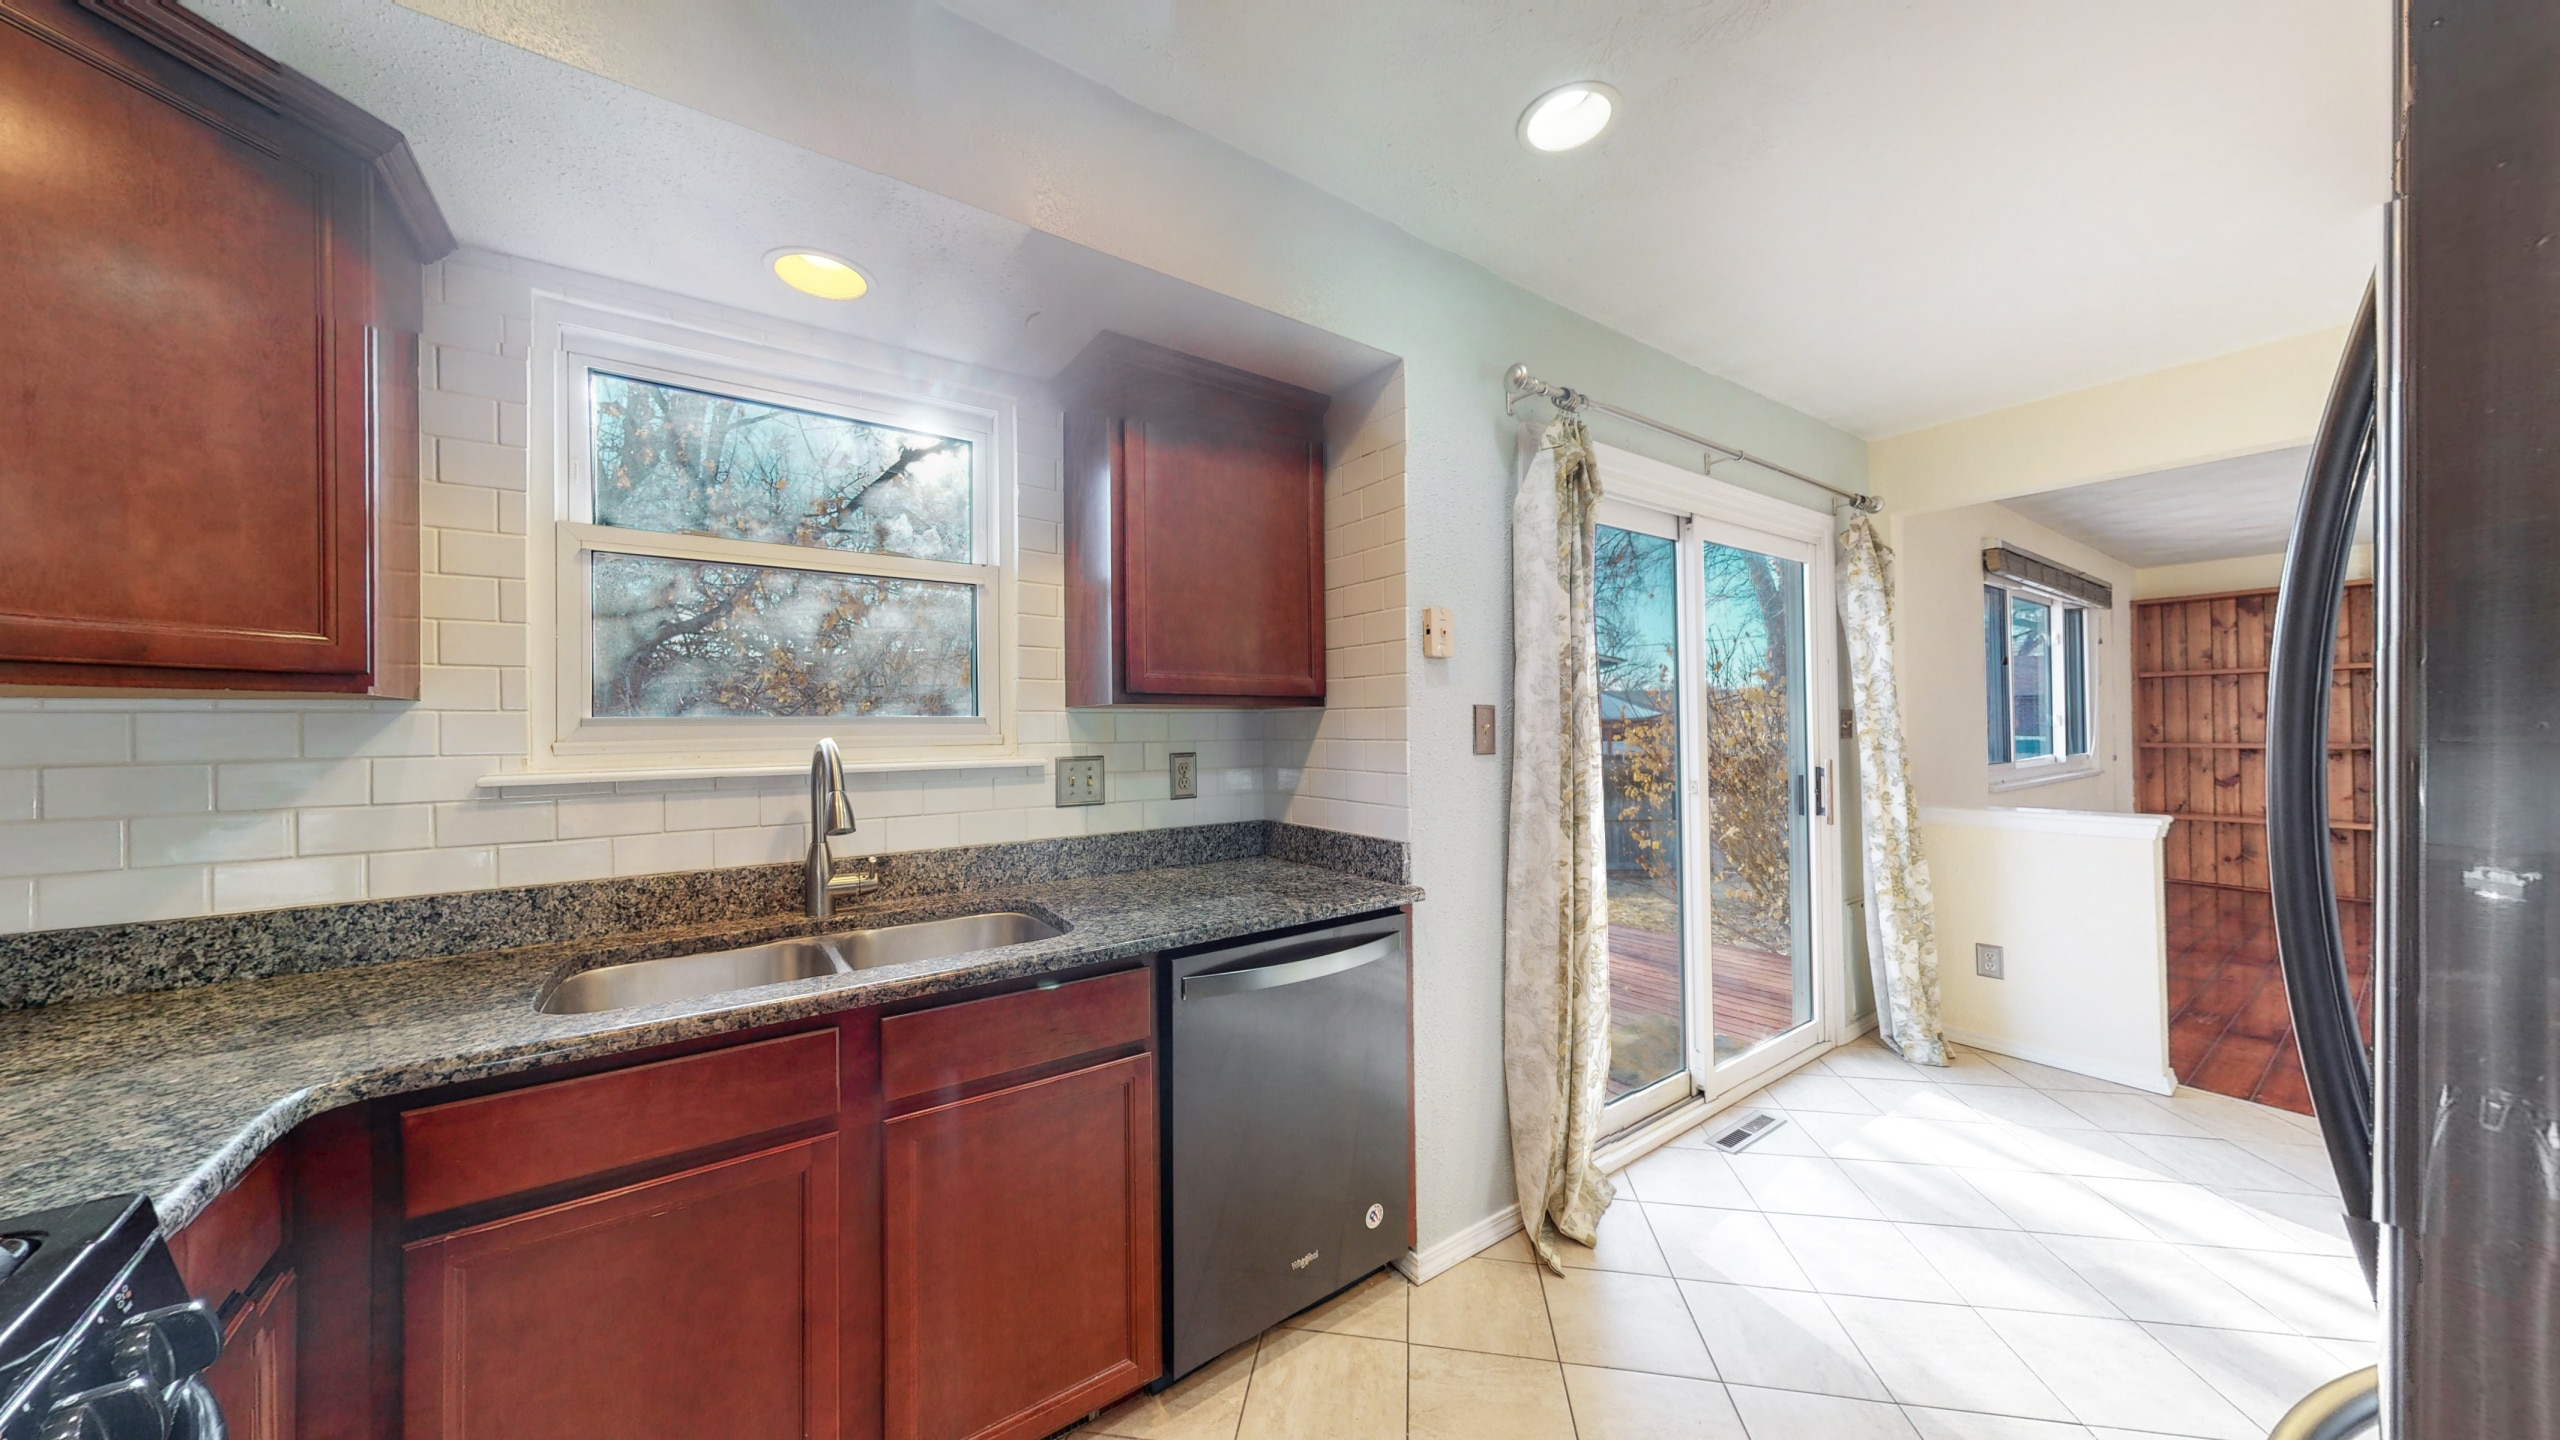 Open Concept Kitchen, Connect to patio, stainless steel dishwasher, window over sink